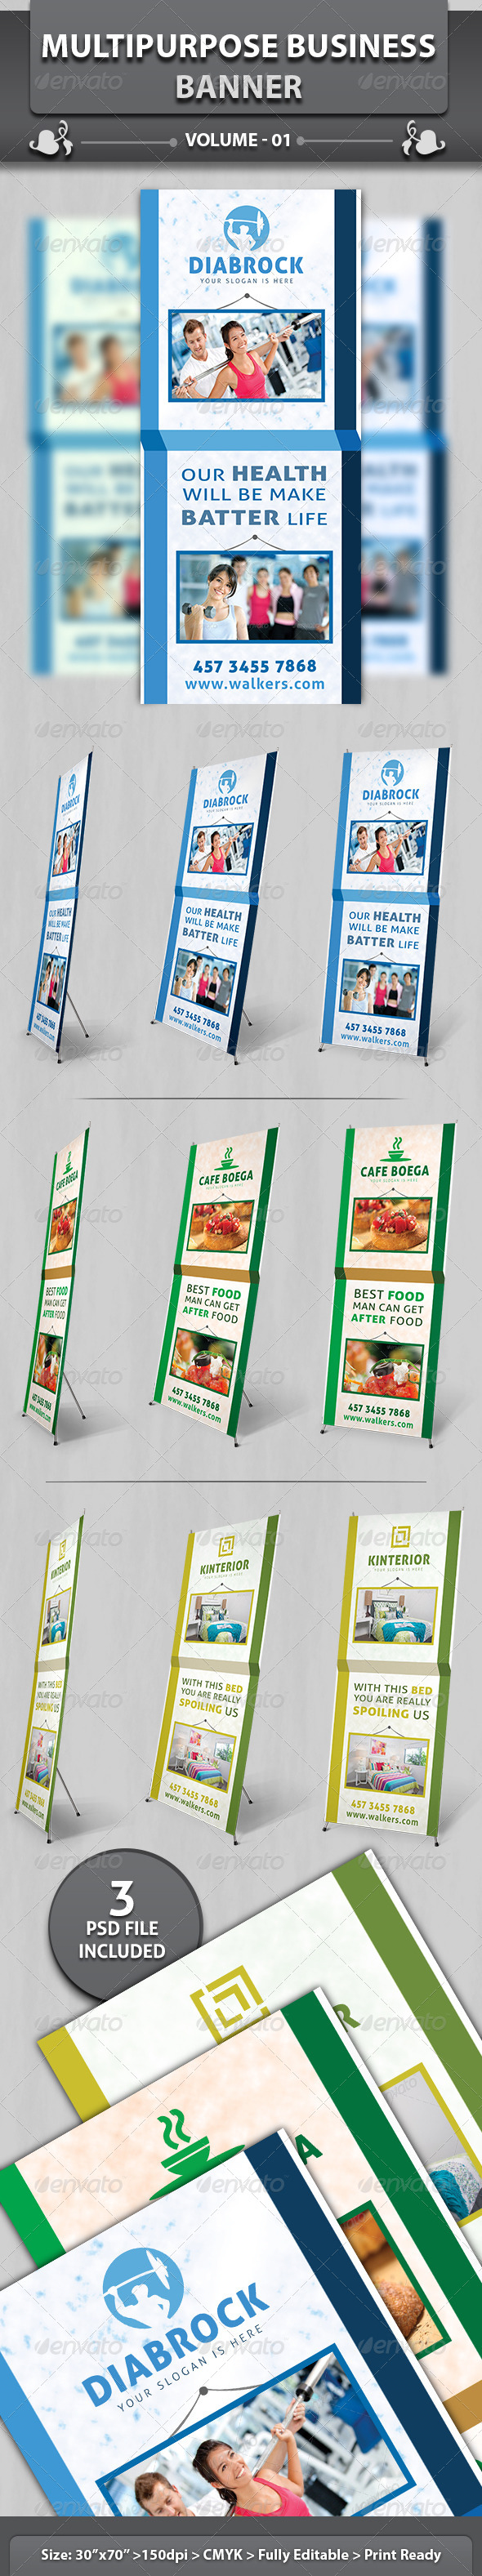 GraphicRiver Multipurpose Business Banner v1 4981342